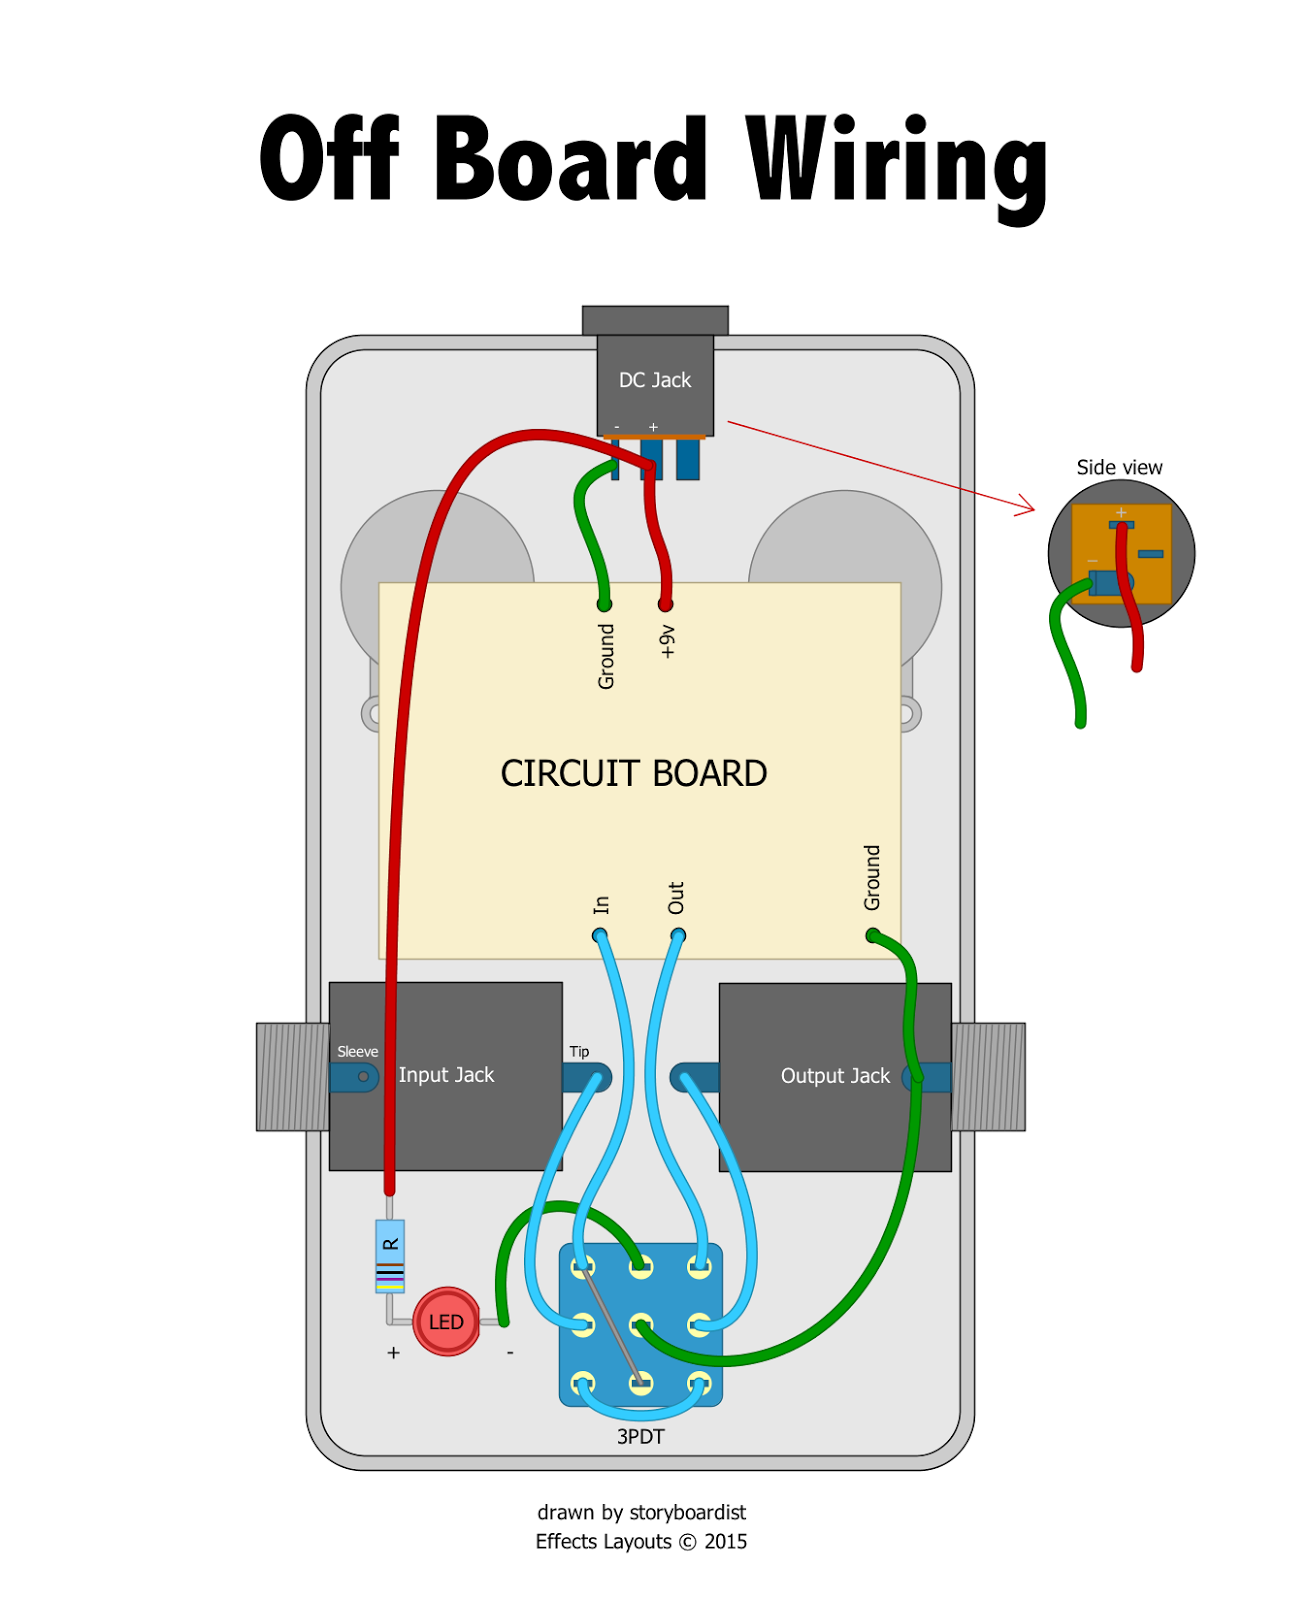 Off Bboard Bwiring on Diagram Of A Guitar Effects Pedal Circuit